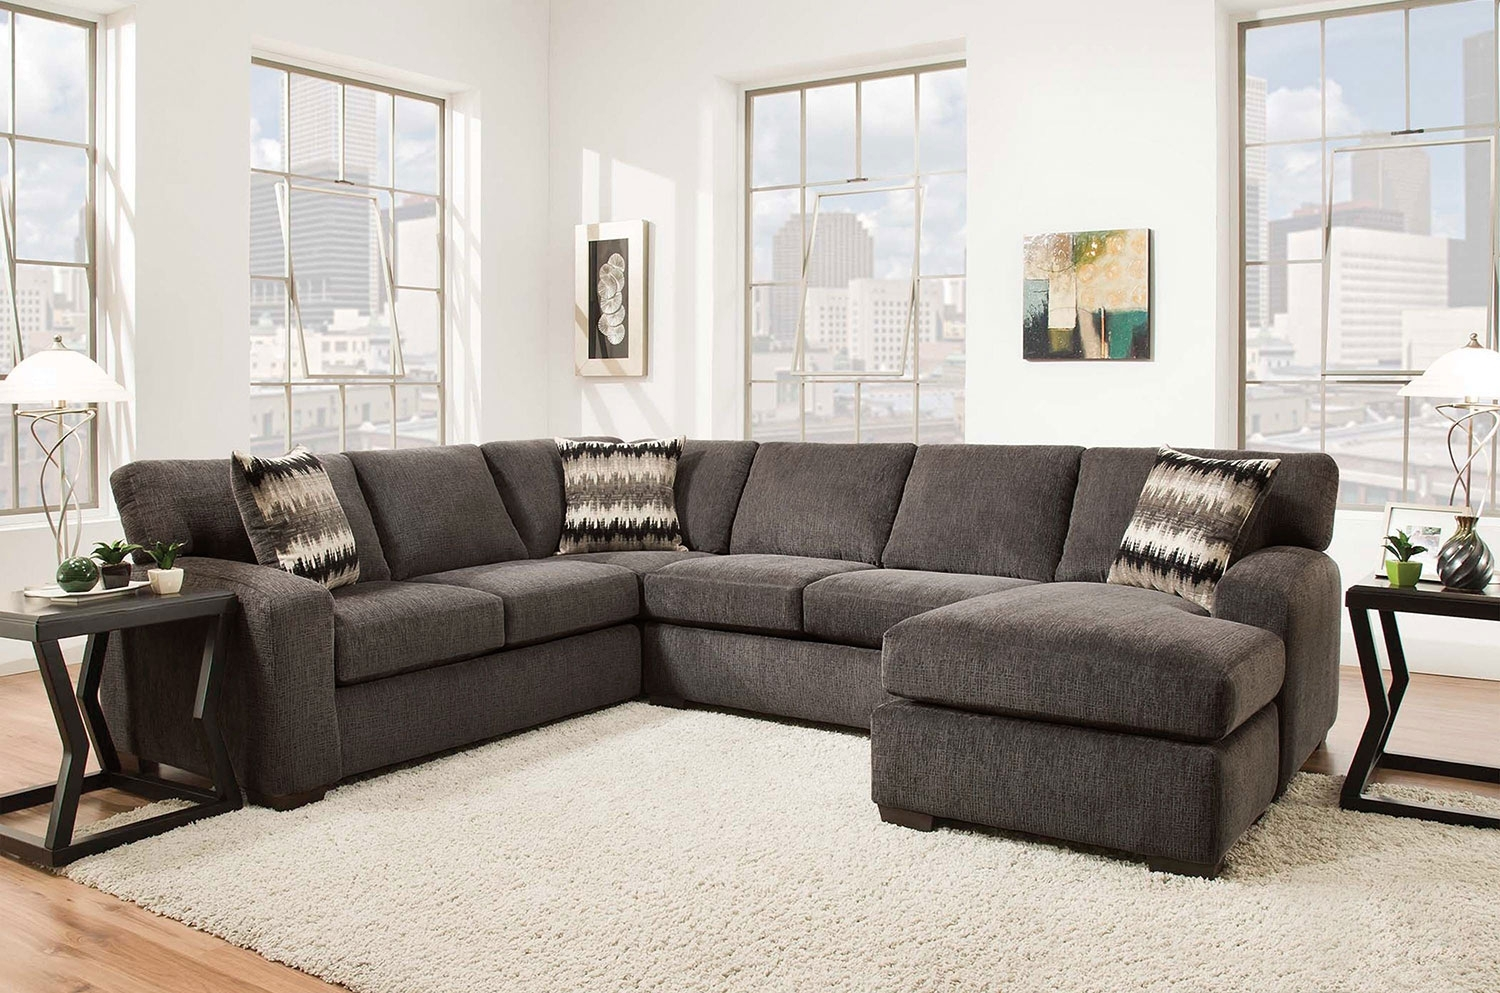 Fenella 2 Piece Right Facing Sectional – Smoke | Levin Furniture With Vt Sectional Sofas (Image 3 of 10)